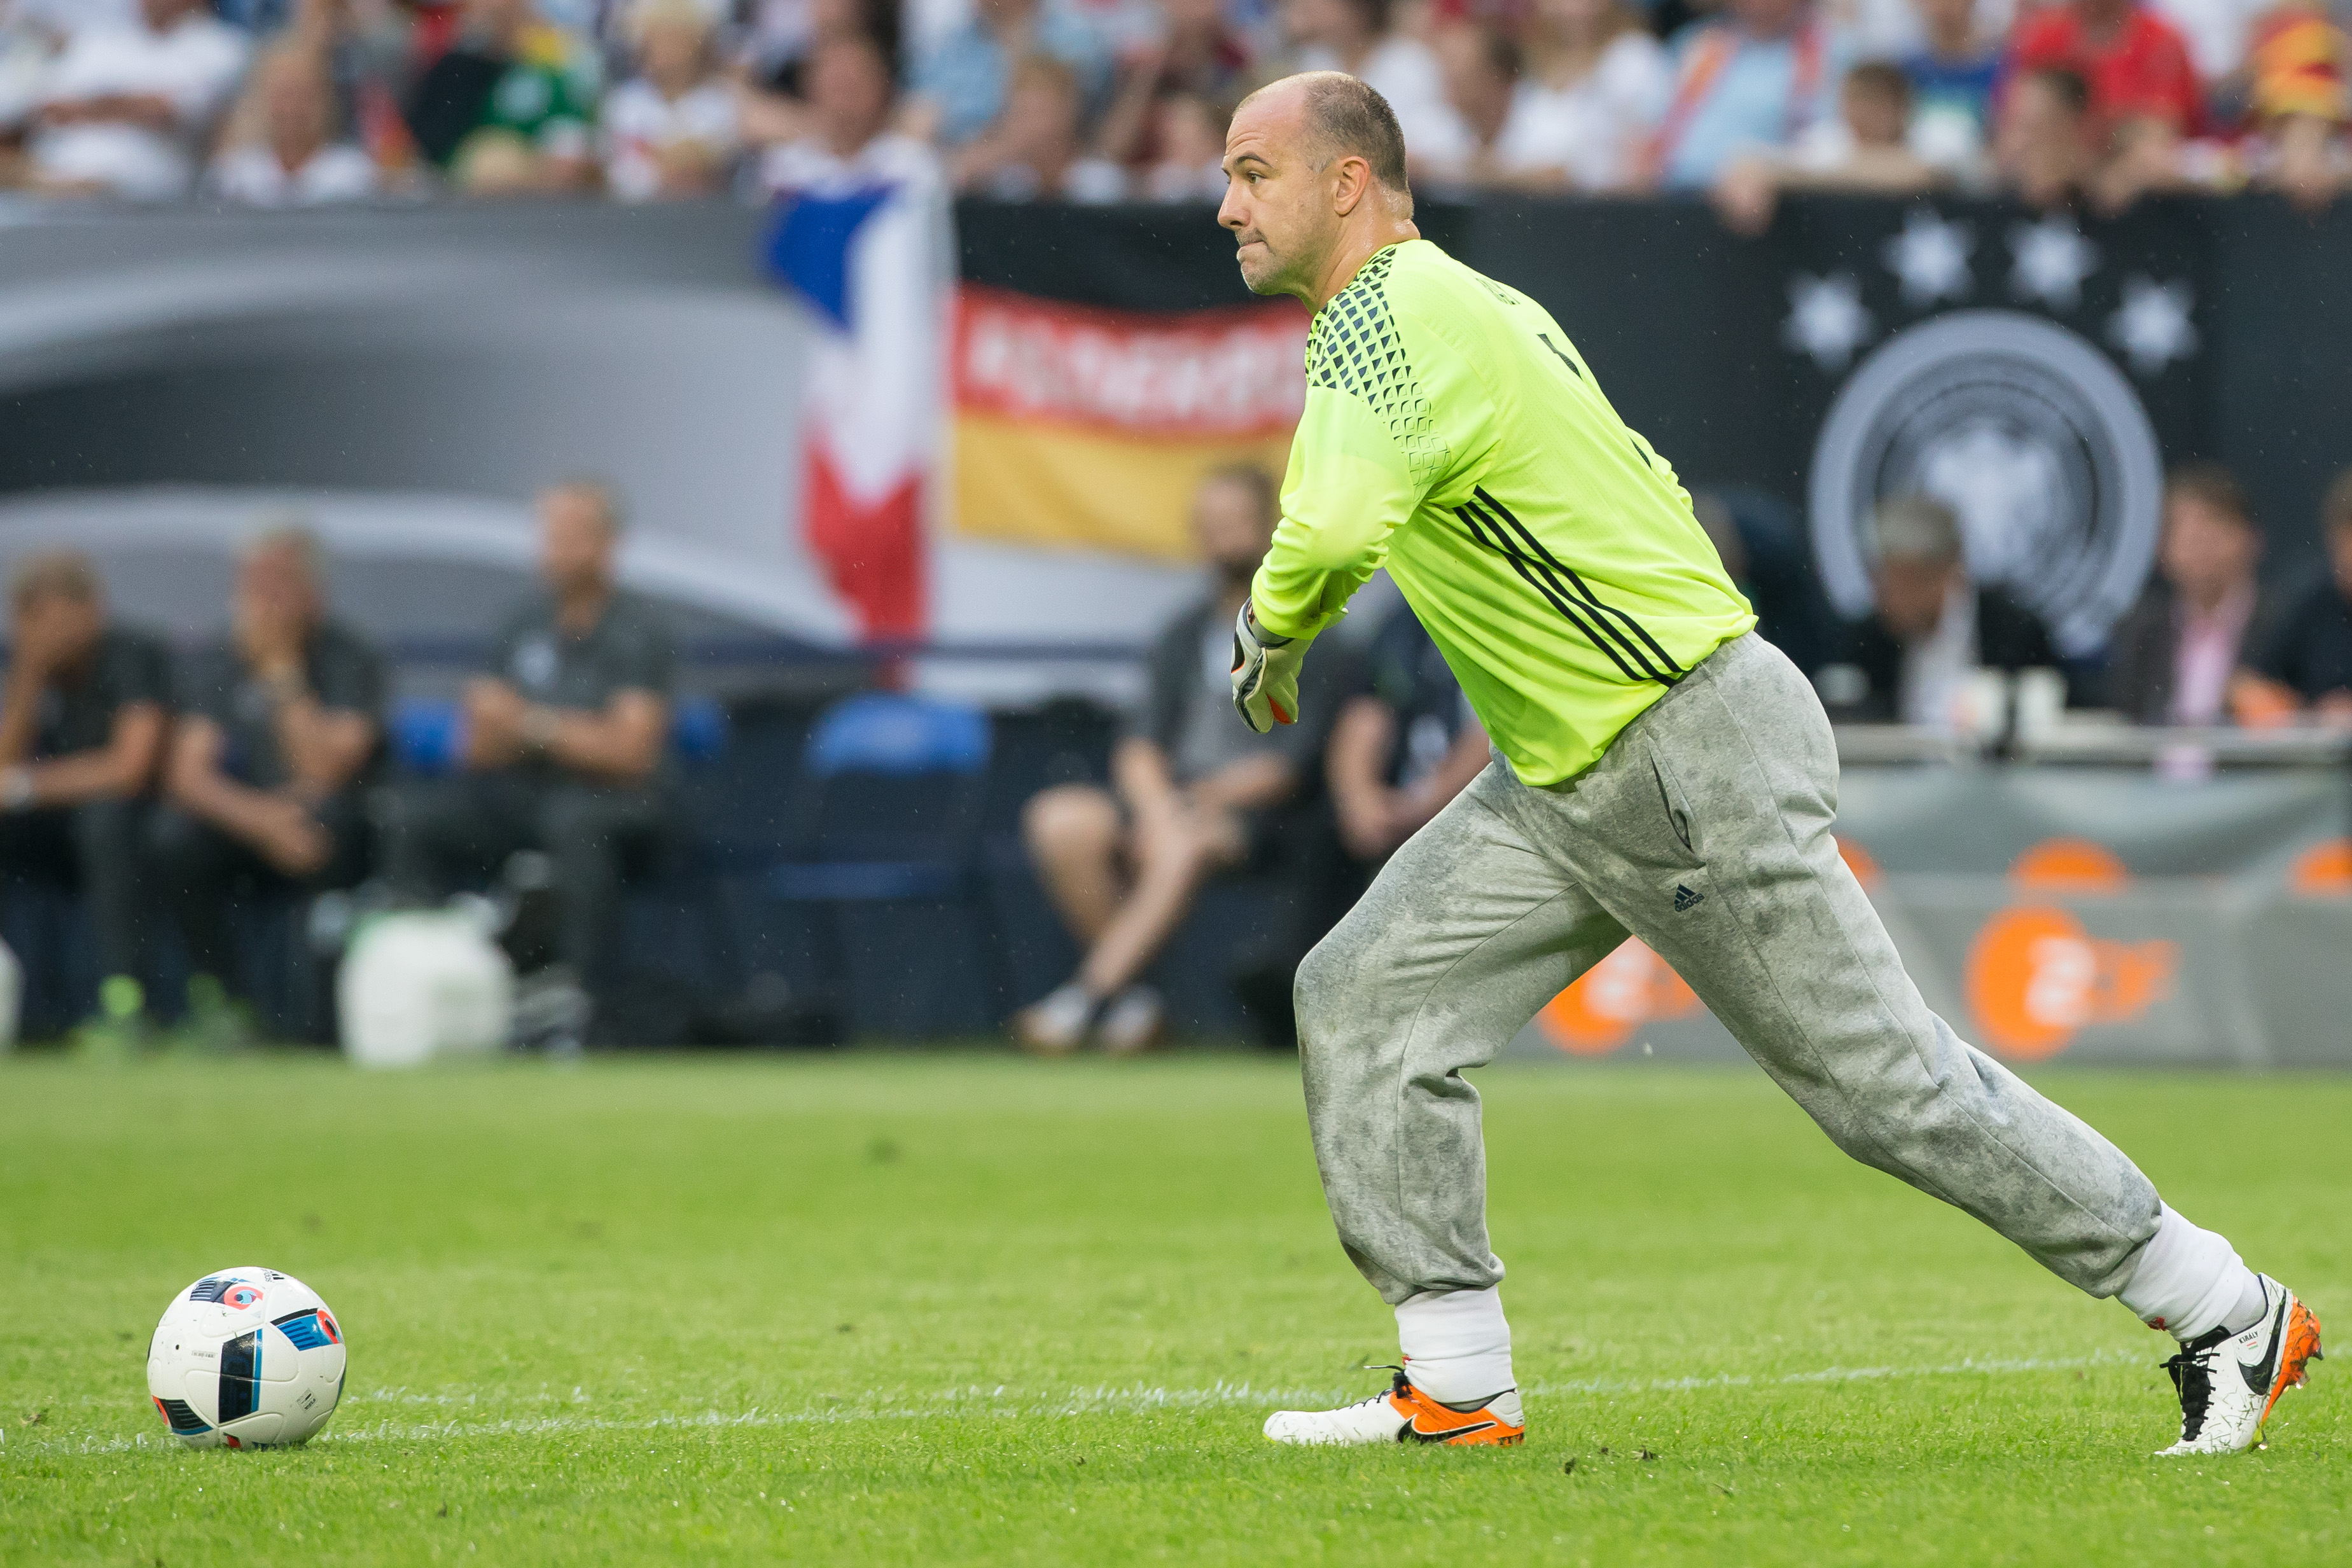 Crystal Palace legend Gabor Kiraly becomes oldest player to ever feature at European Championships